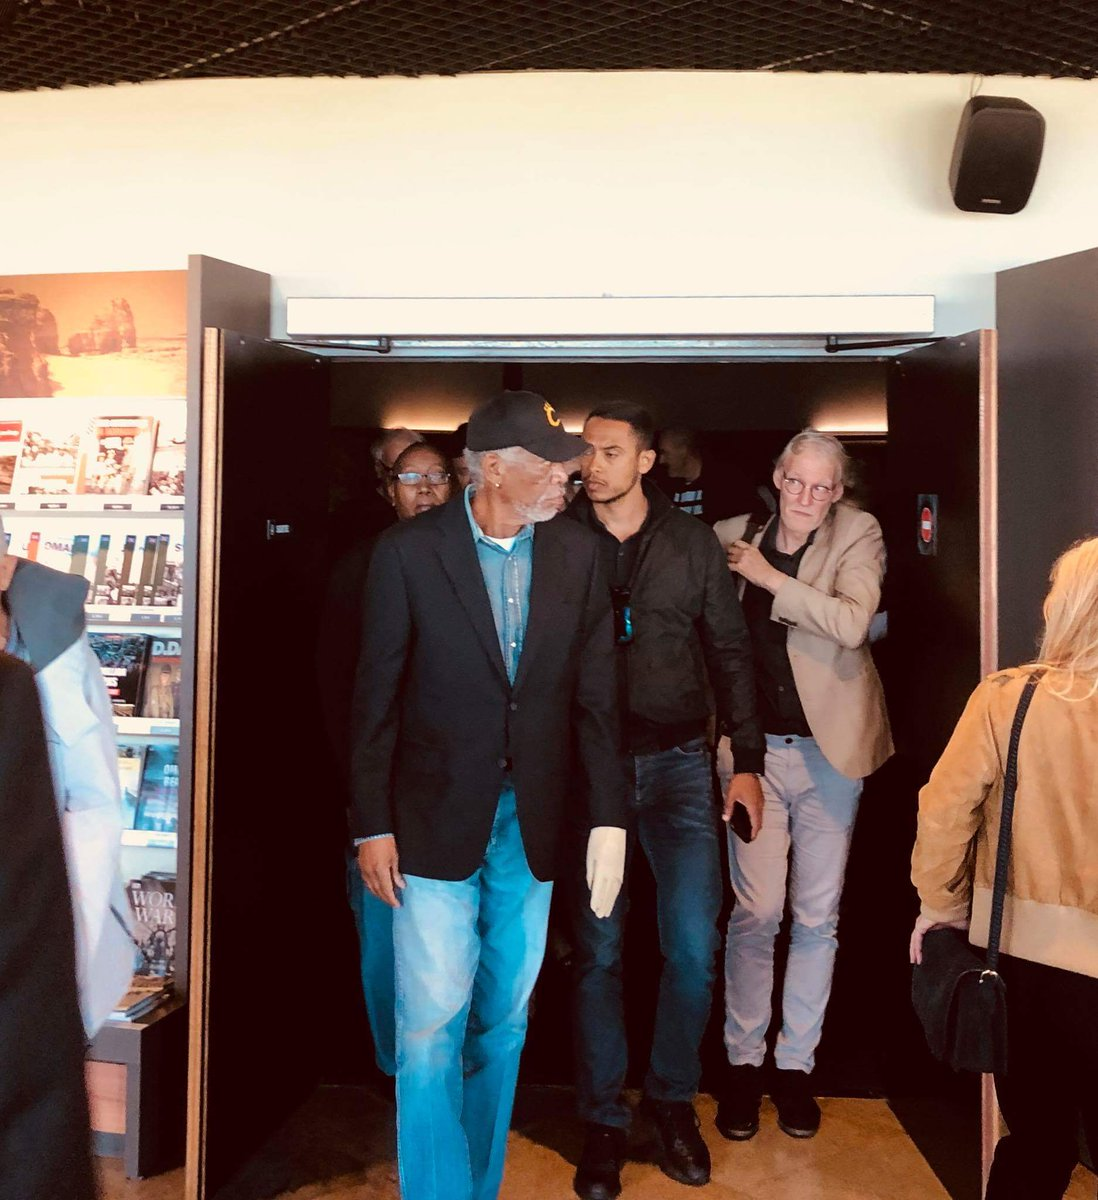 Morgan #Freeman while attending the international film festival in Deauville has taken the opportunity to watch the normandy's 100 days film at #Arromanches360 #Deauville2018 #DeauvilleUS #memorialdecaen